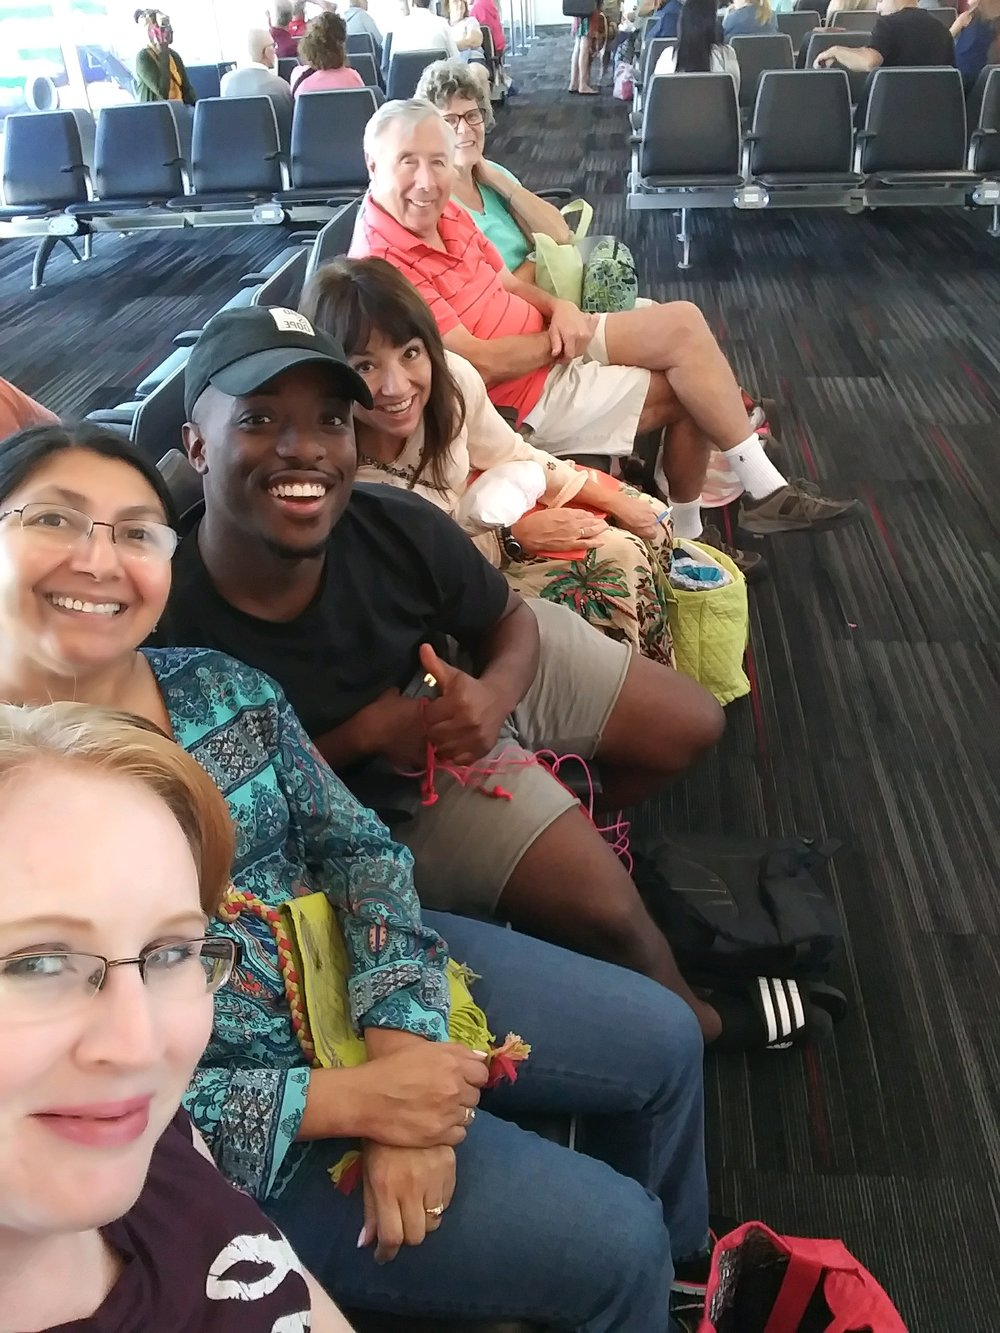 RPC's  Mission Outreach  Team prepares to go to Yucatán, Q.R, Mexico  - Laura Nieto, Dr. Clara Herrera, Kemo Jones, Rev. Mary Cox, Dave and Marge Summers